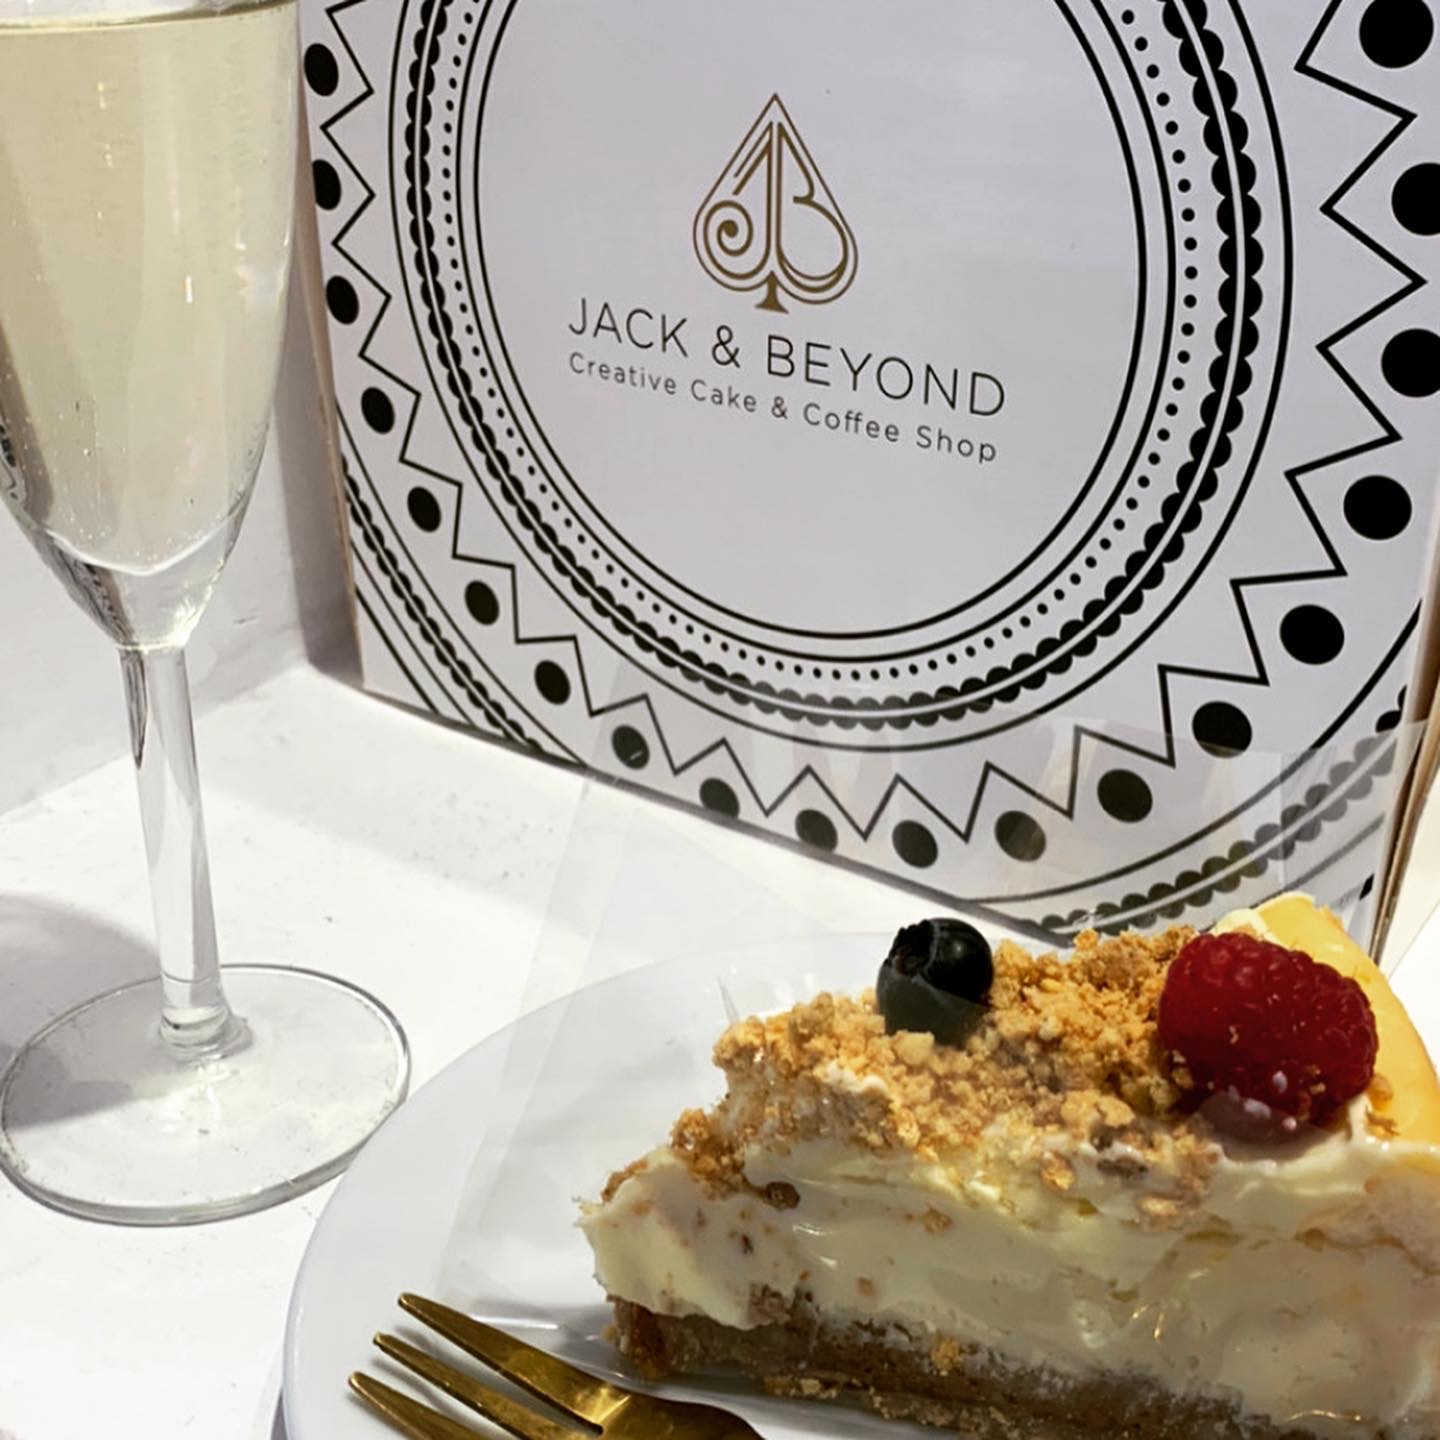 Afternoon Tea & Bottomless Cake Brunches at Jack and  Beyond - The cheesecake is the star of the show